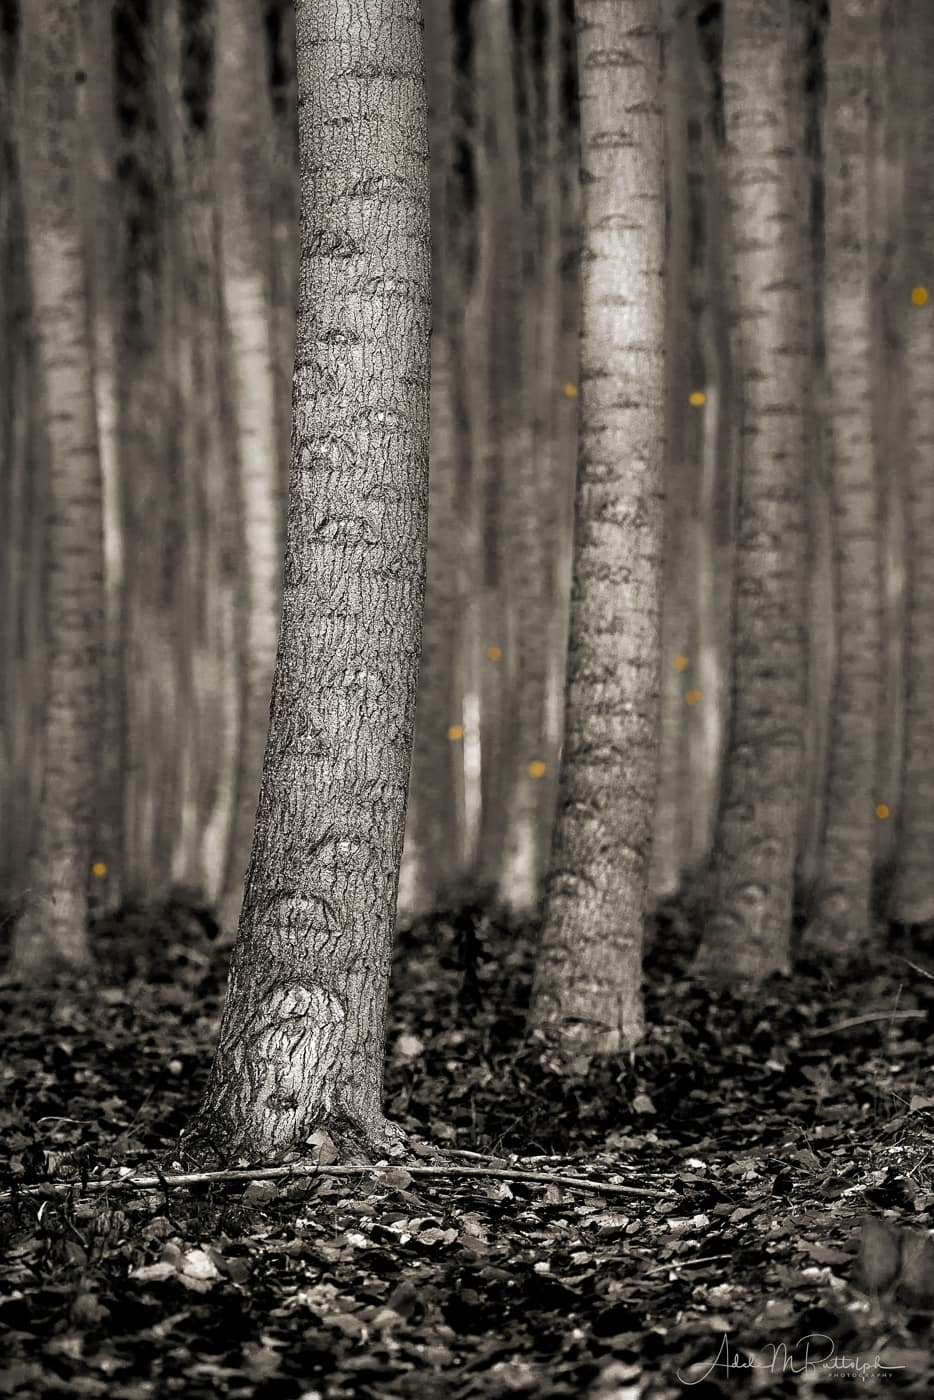 Rows of monochrome tree trunks with golden leaves falling in the background. Photograph taken at Boardman Tree Farm, Boardman, Oregon during the autumn.